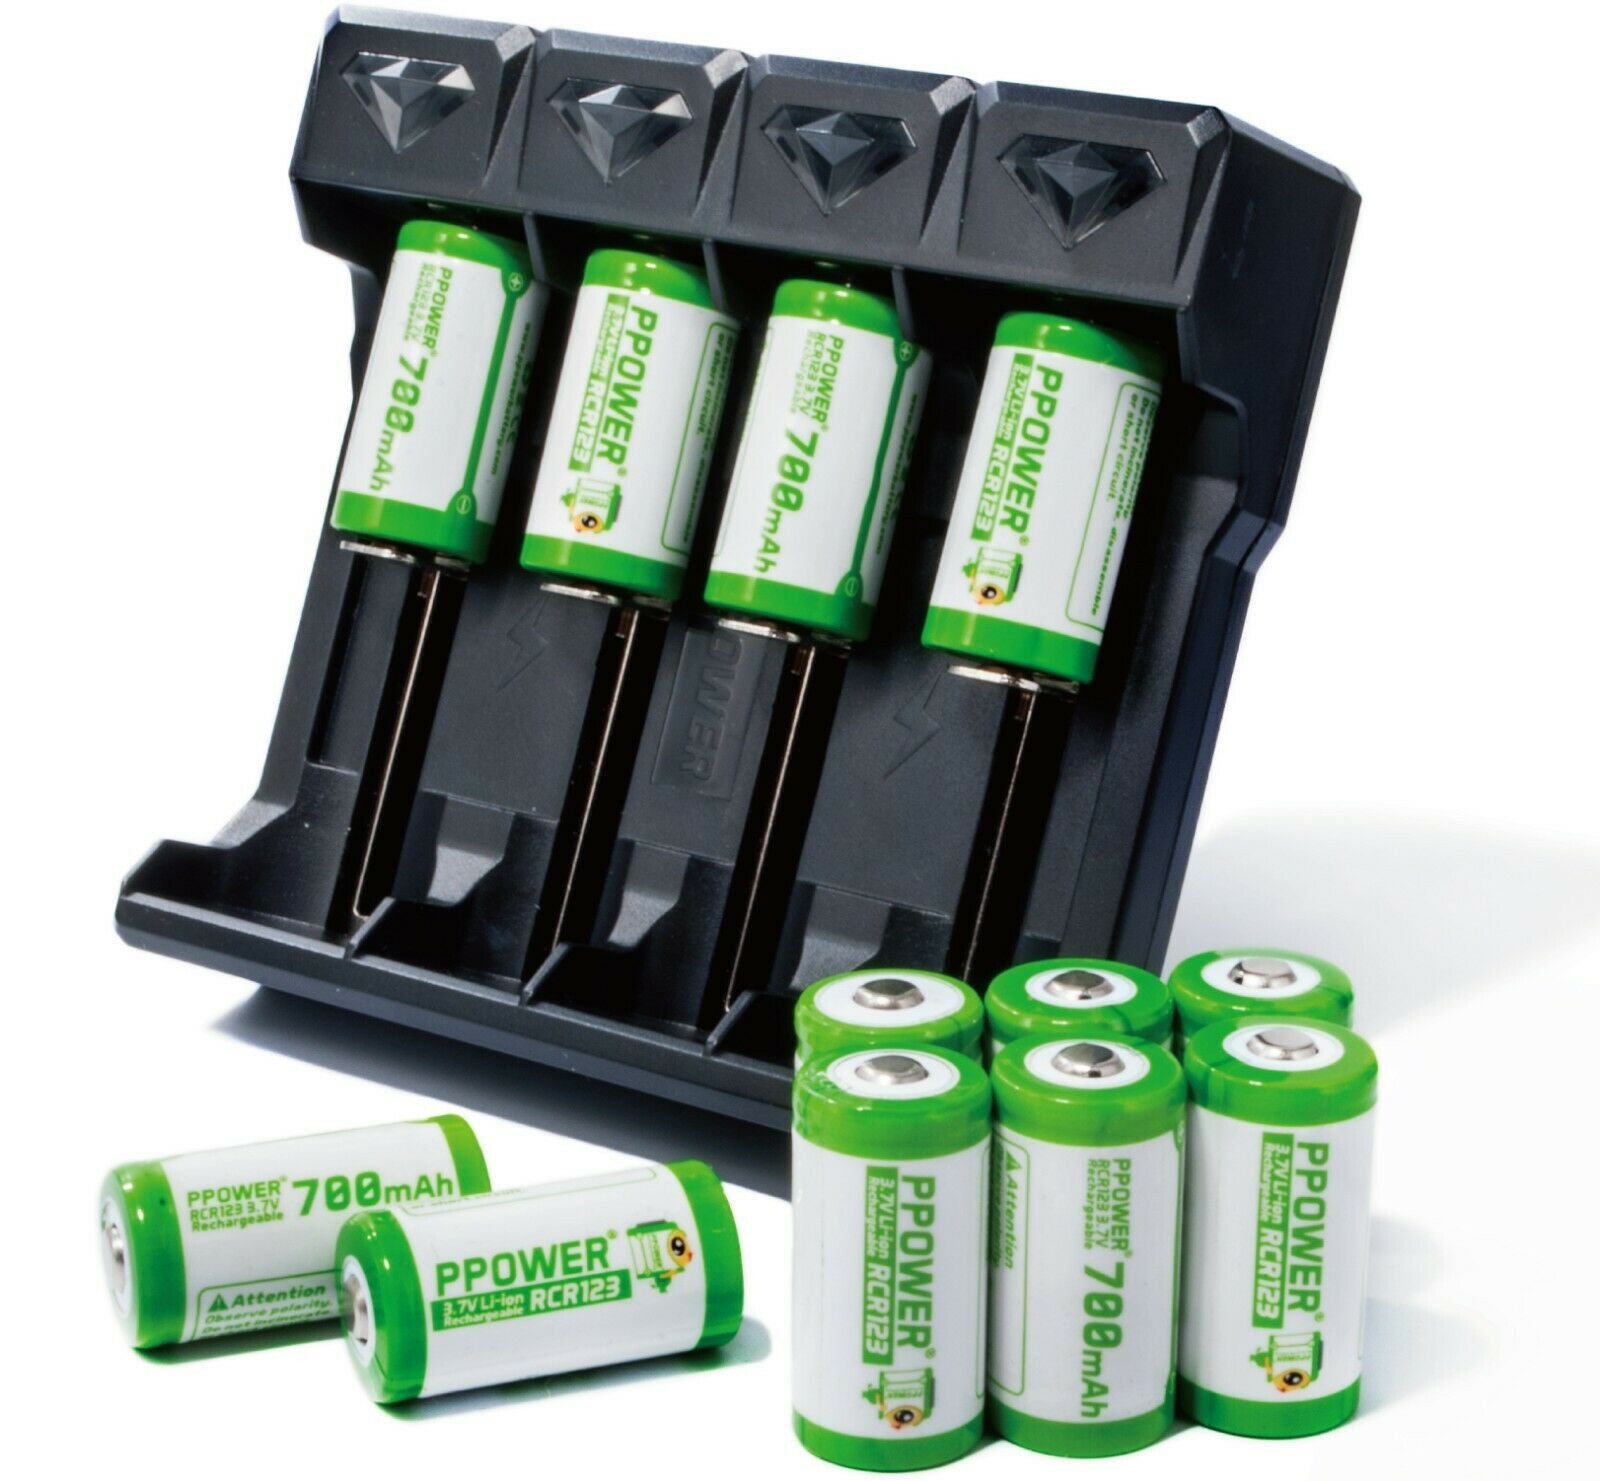 PPOWER 12x 3.7V 700mAh RCR123A Li-ion Rechargeable Batteries for Arlo IP CAM